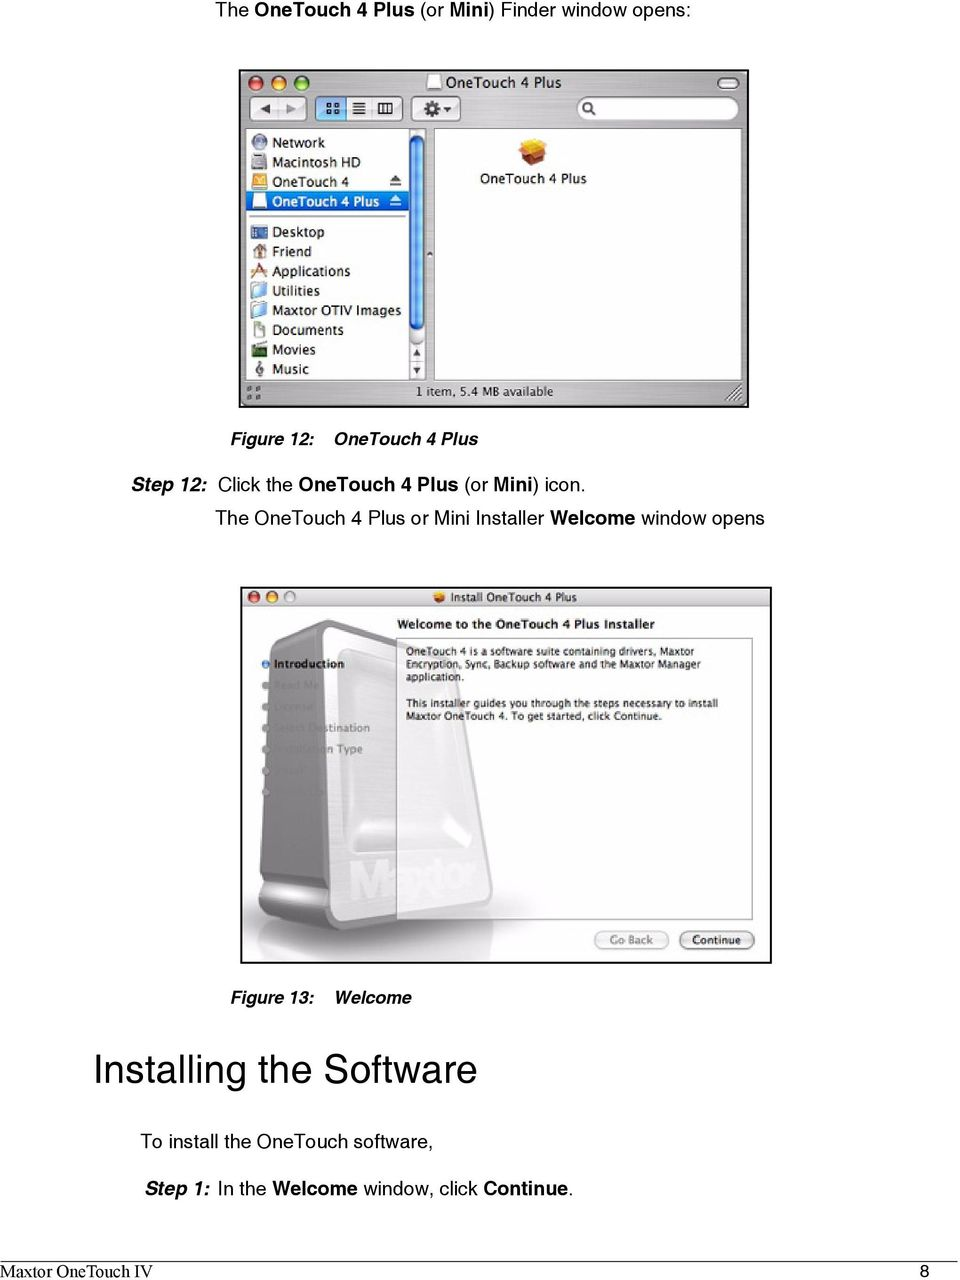 The OneTouch 4 Plus or Mini Installer Welcome window opens Figure 13: Welcome